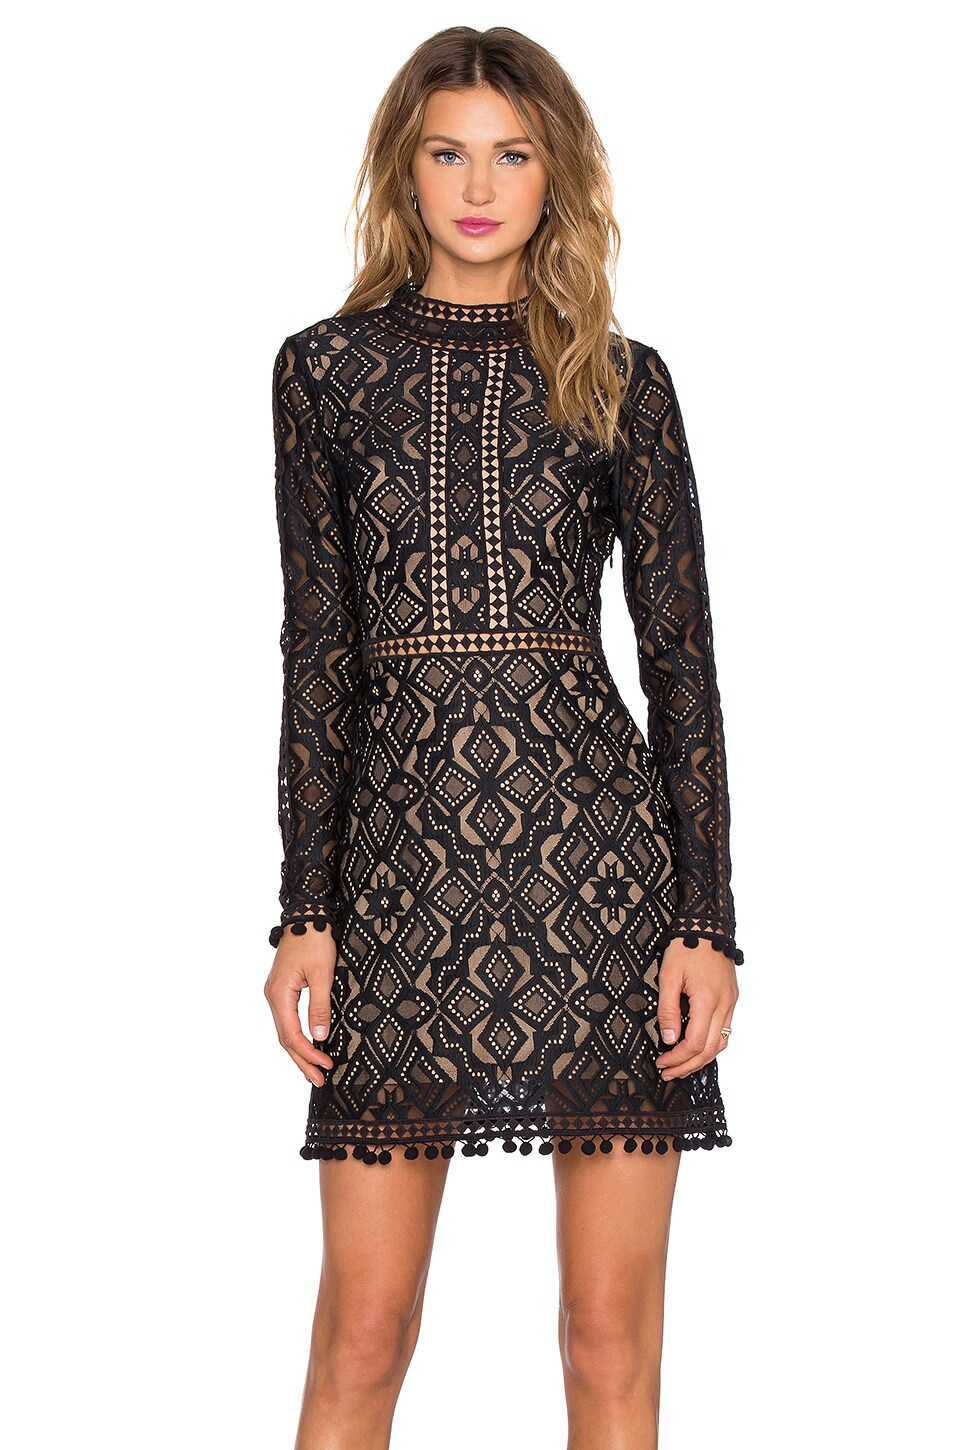 For Love & Lemons Florence Cocktail Dress in Black